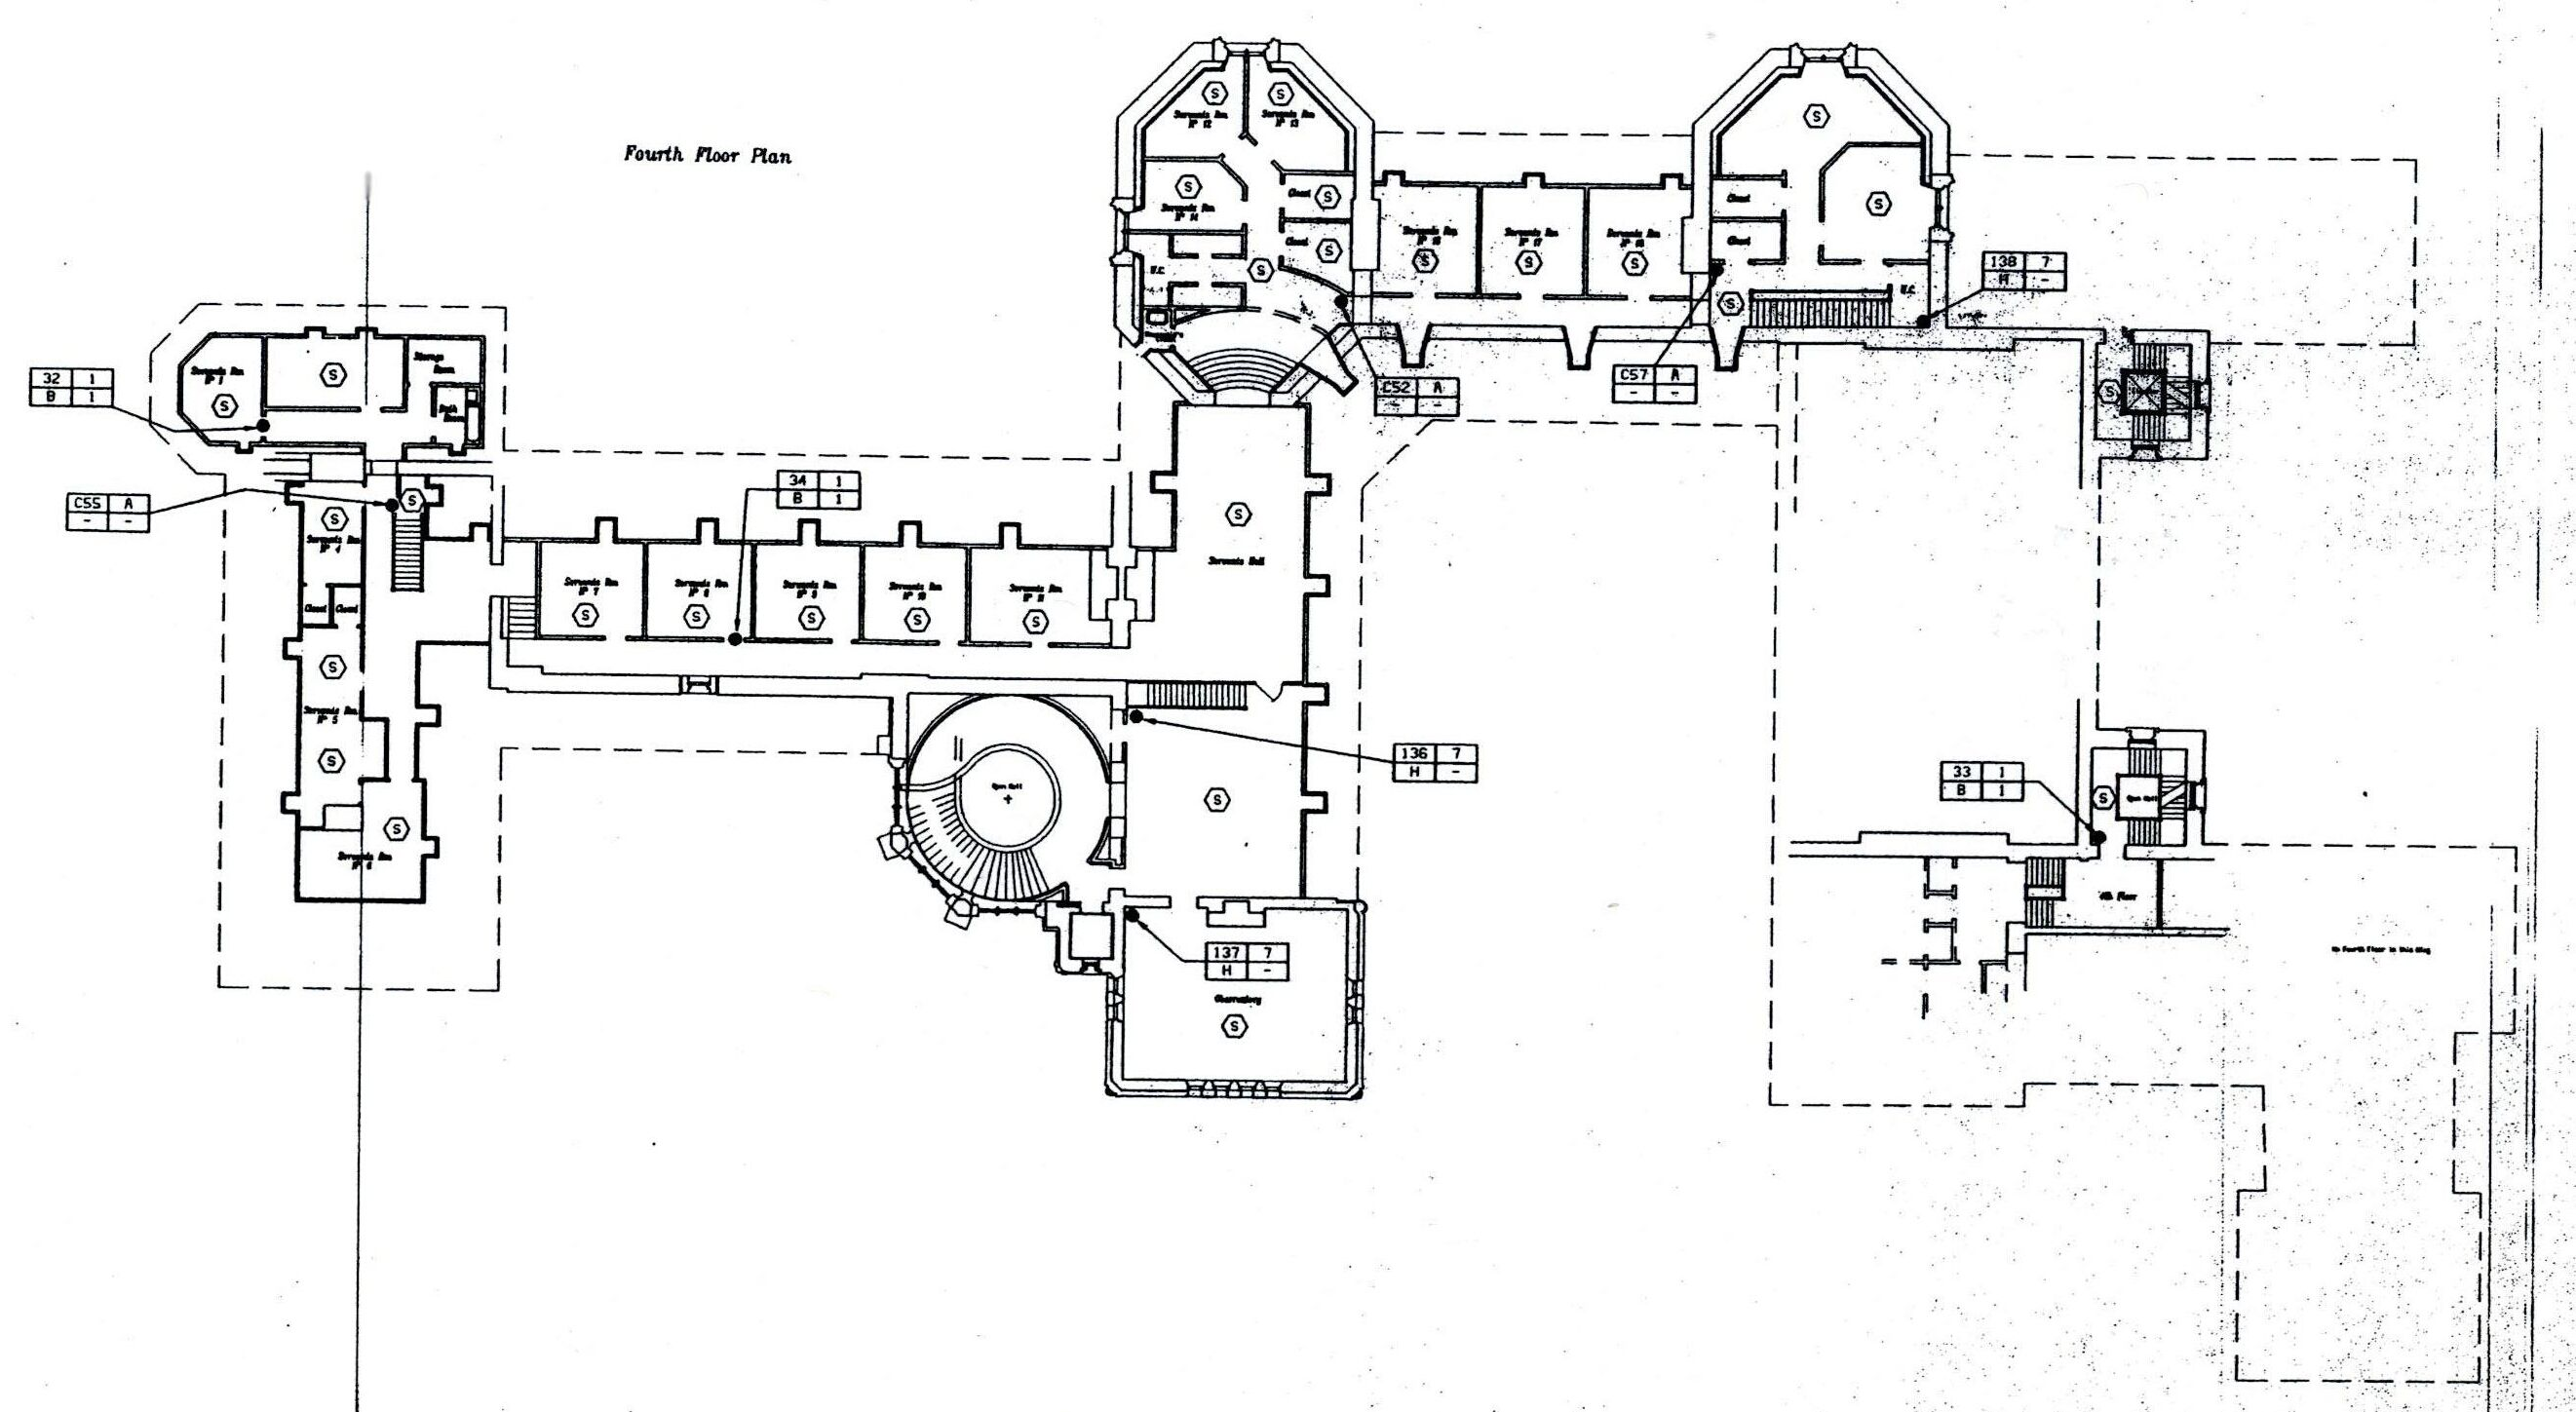 Biltmore house 4th floor floorplan biltmore estate 4th for Biltmore estate floor plan